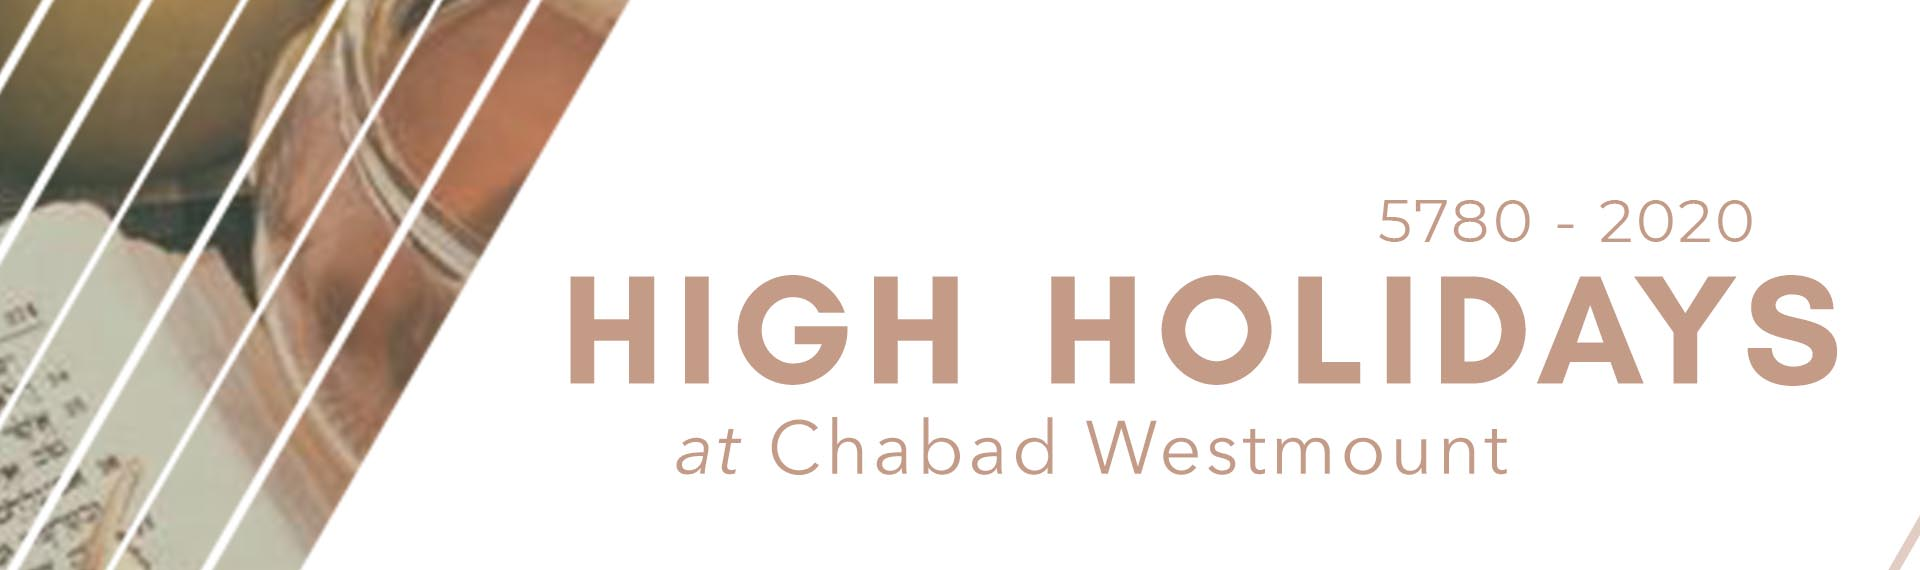 High Holidays | Chabad Westmount